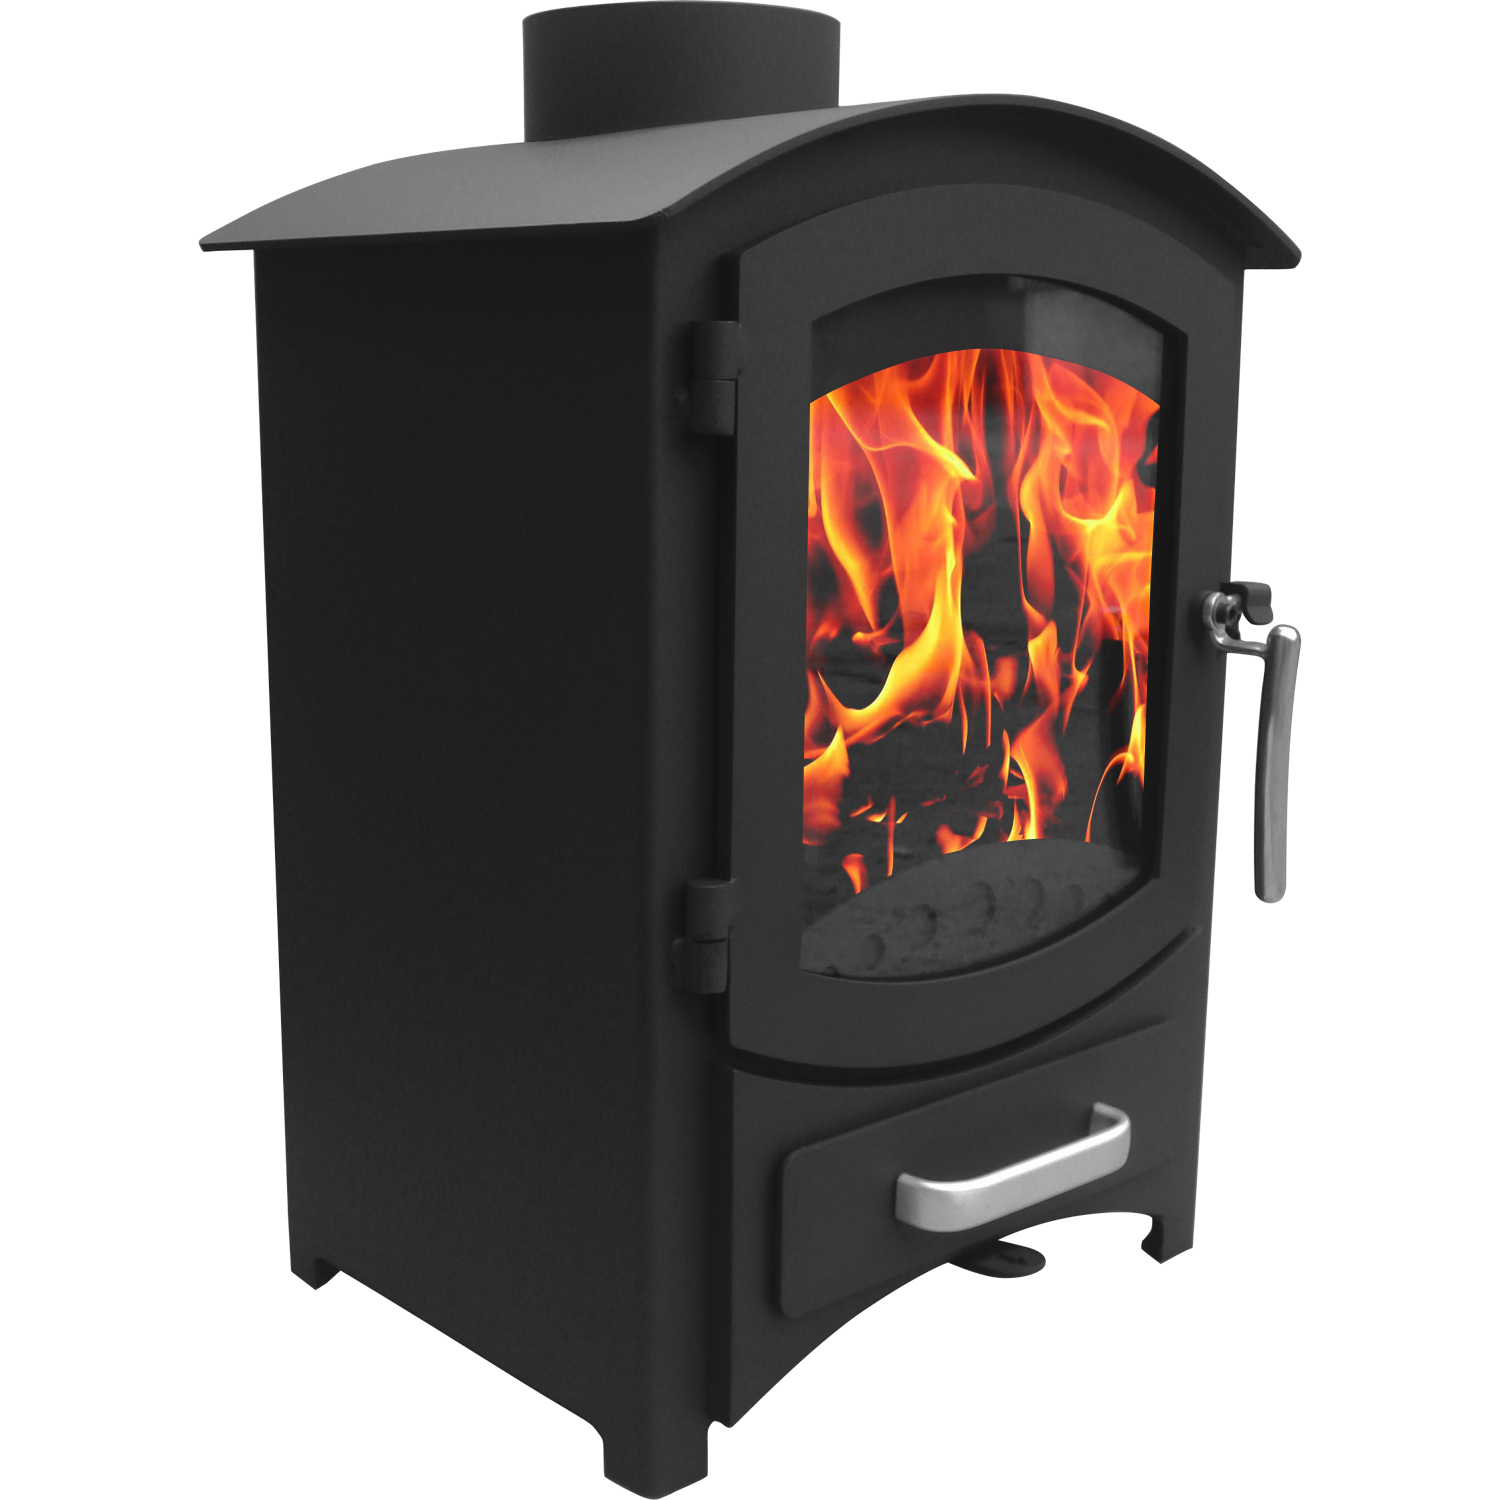 Wellingore 6 22kw Log Burner Multifuel Wood Burning Stove